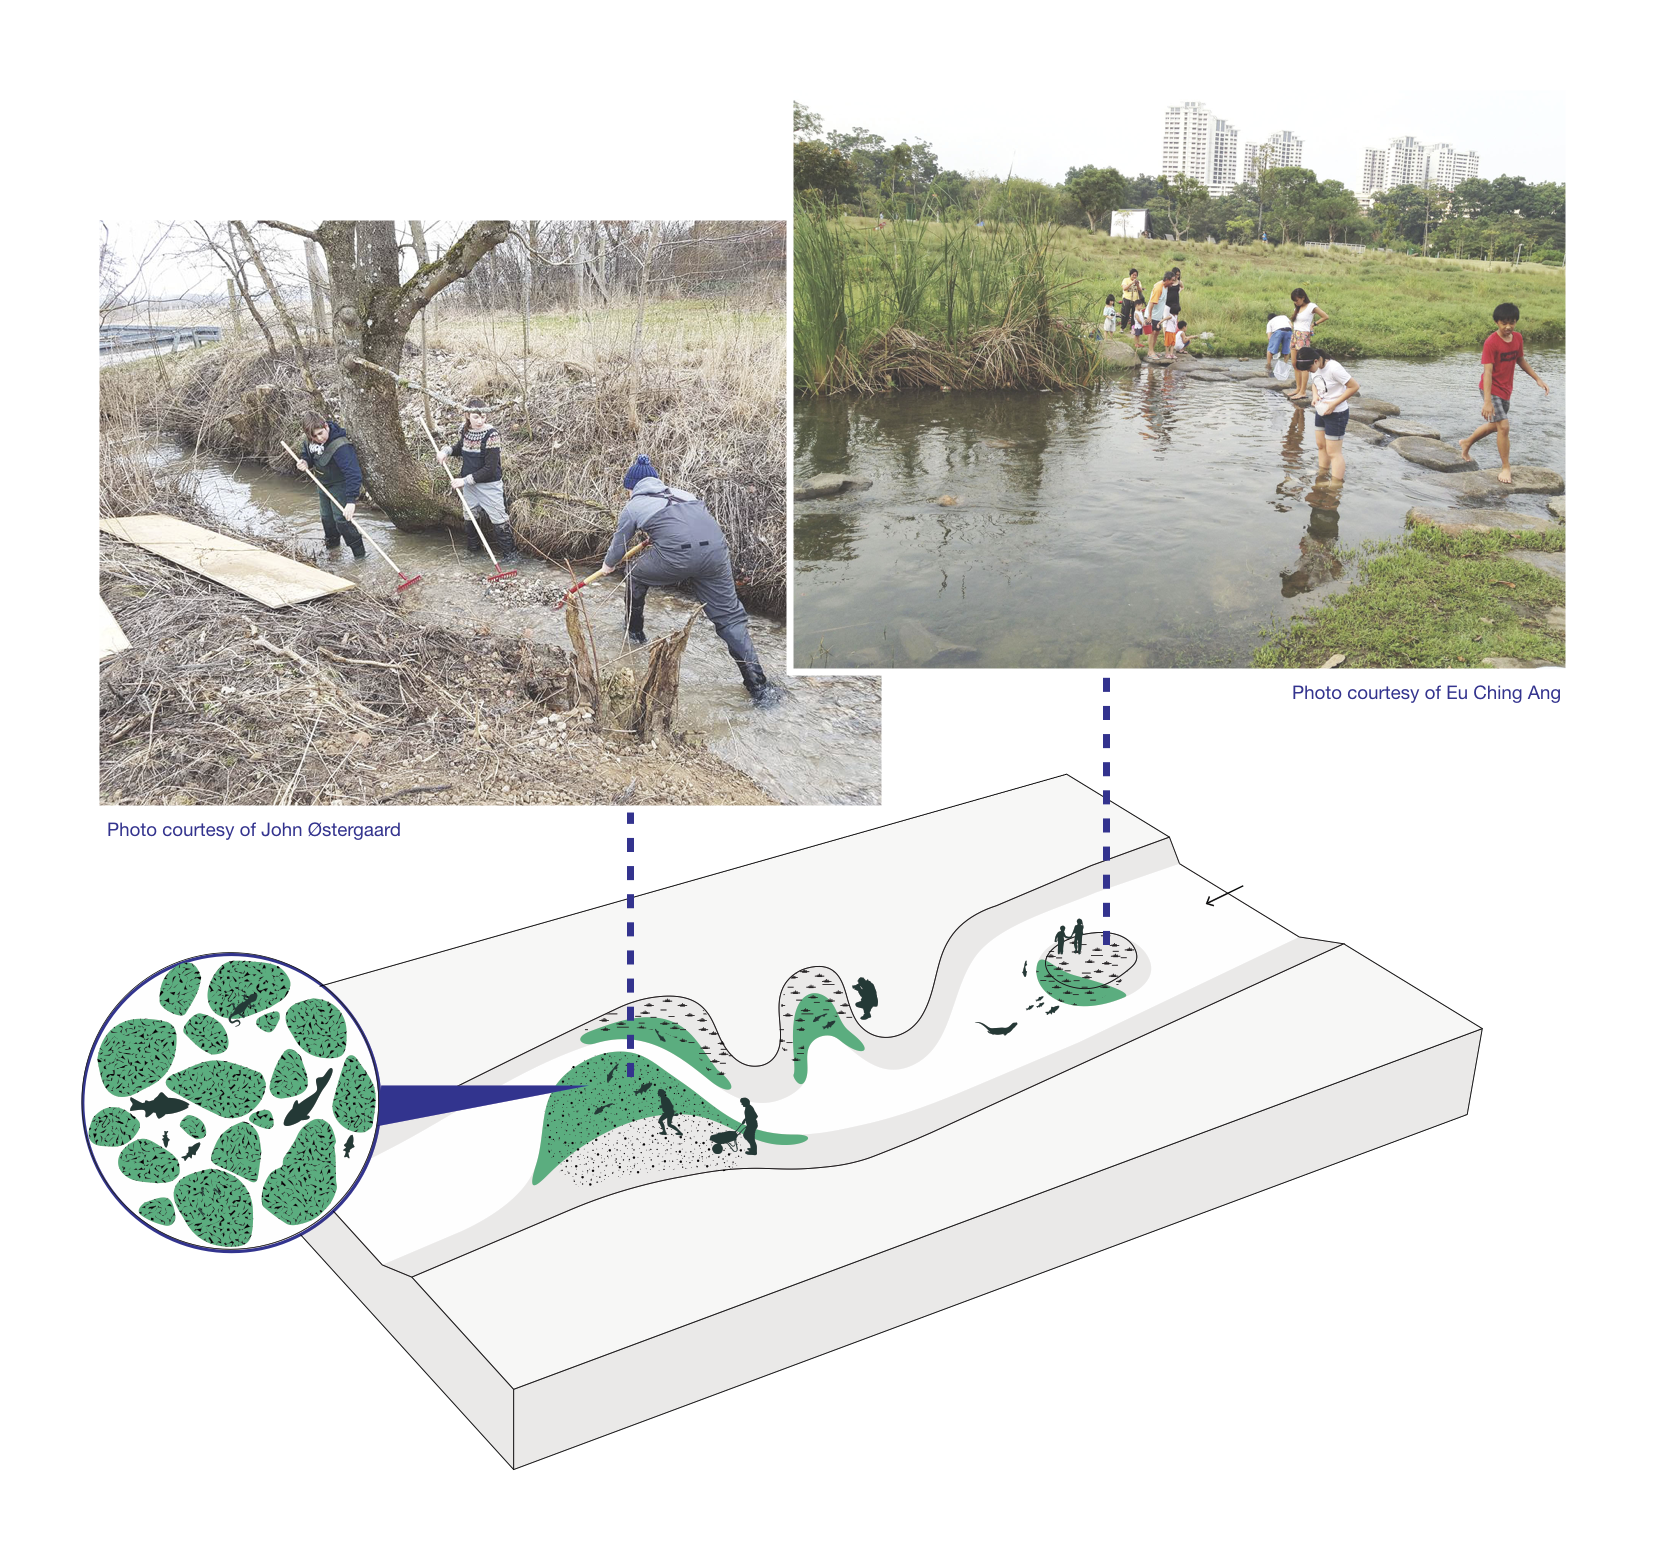 Figure 1. This application of participatory mapping essentially blends human and biodiversity interactions within the waterway. The graphic is copyright of the author.